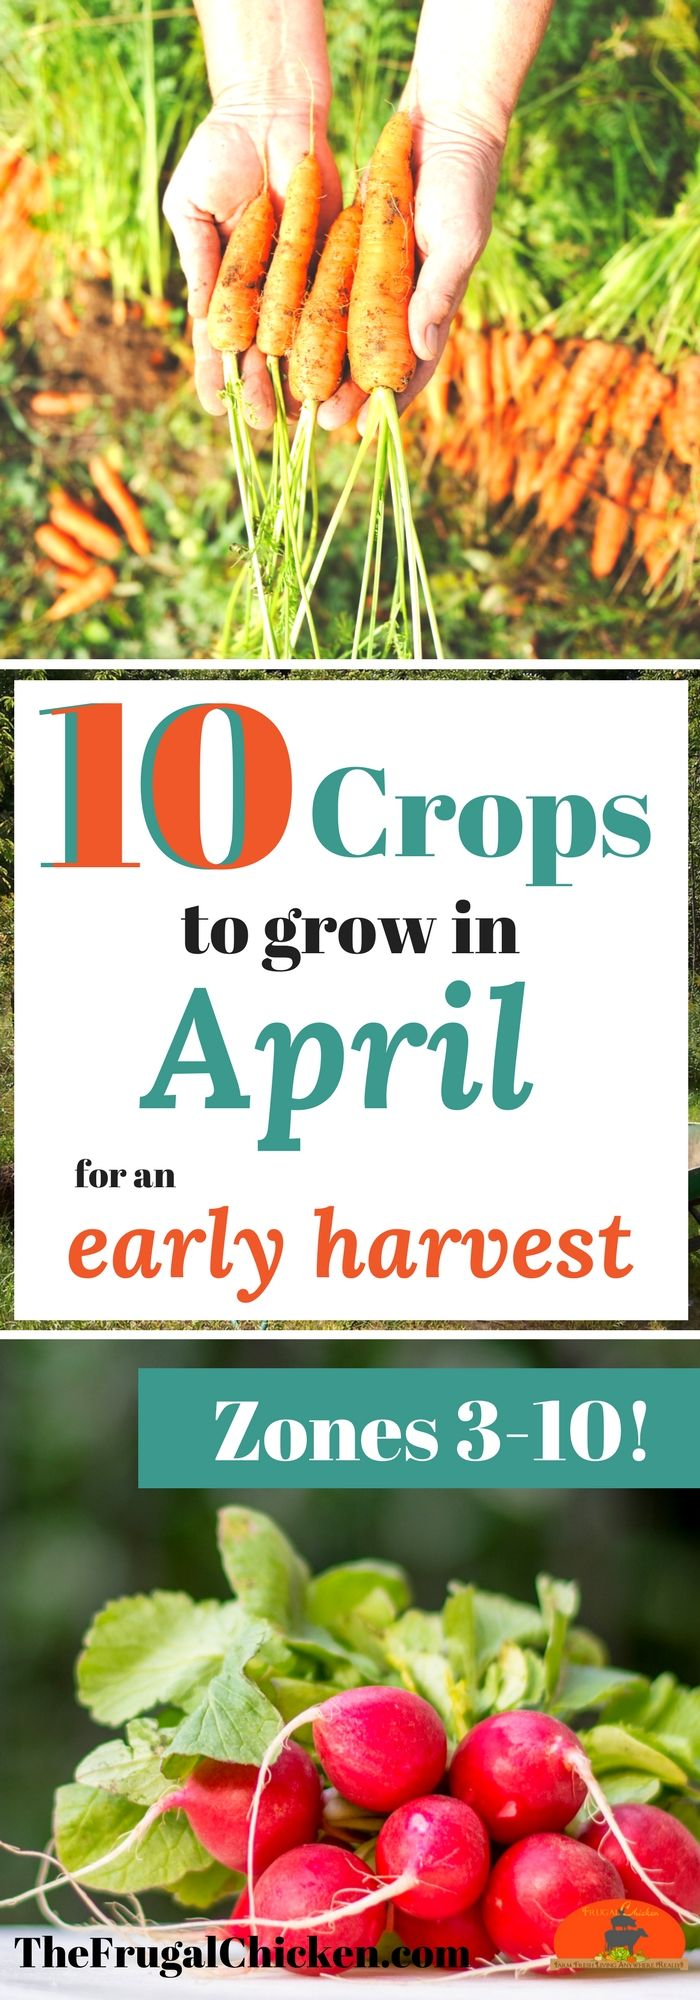 April is the best time to start your garden - and planting now means a healthy harvest this summer! Here's what you can start growing in your vegetable garden in April!